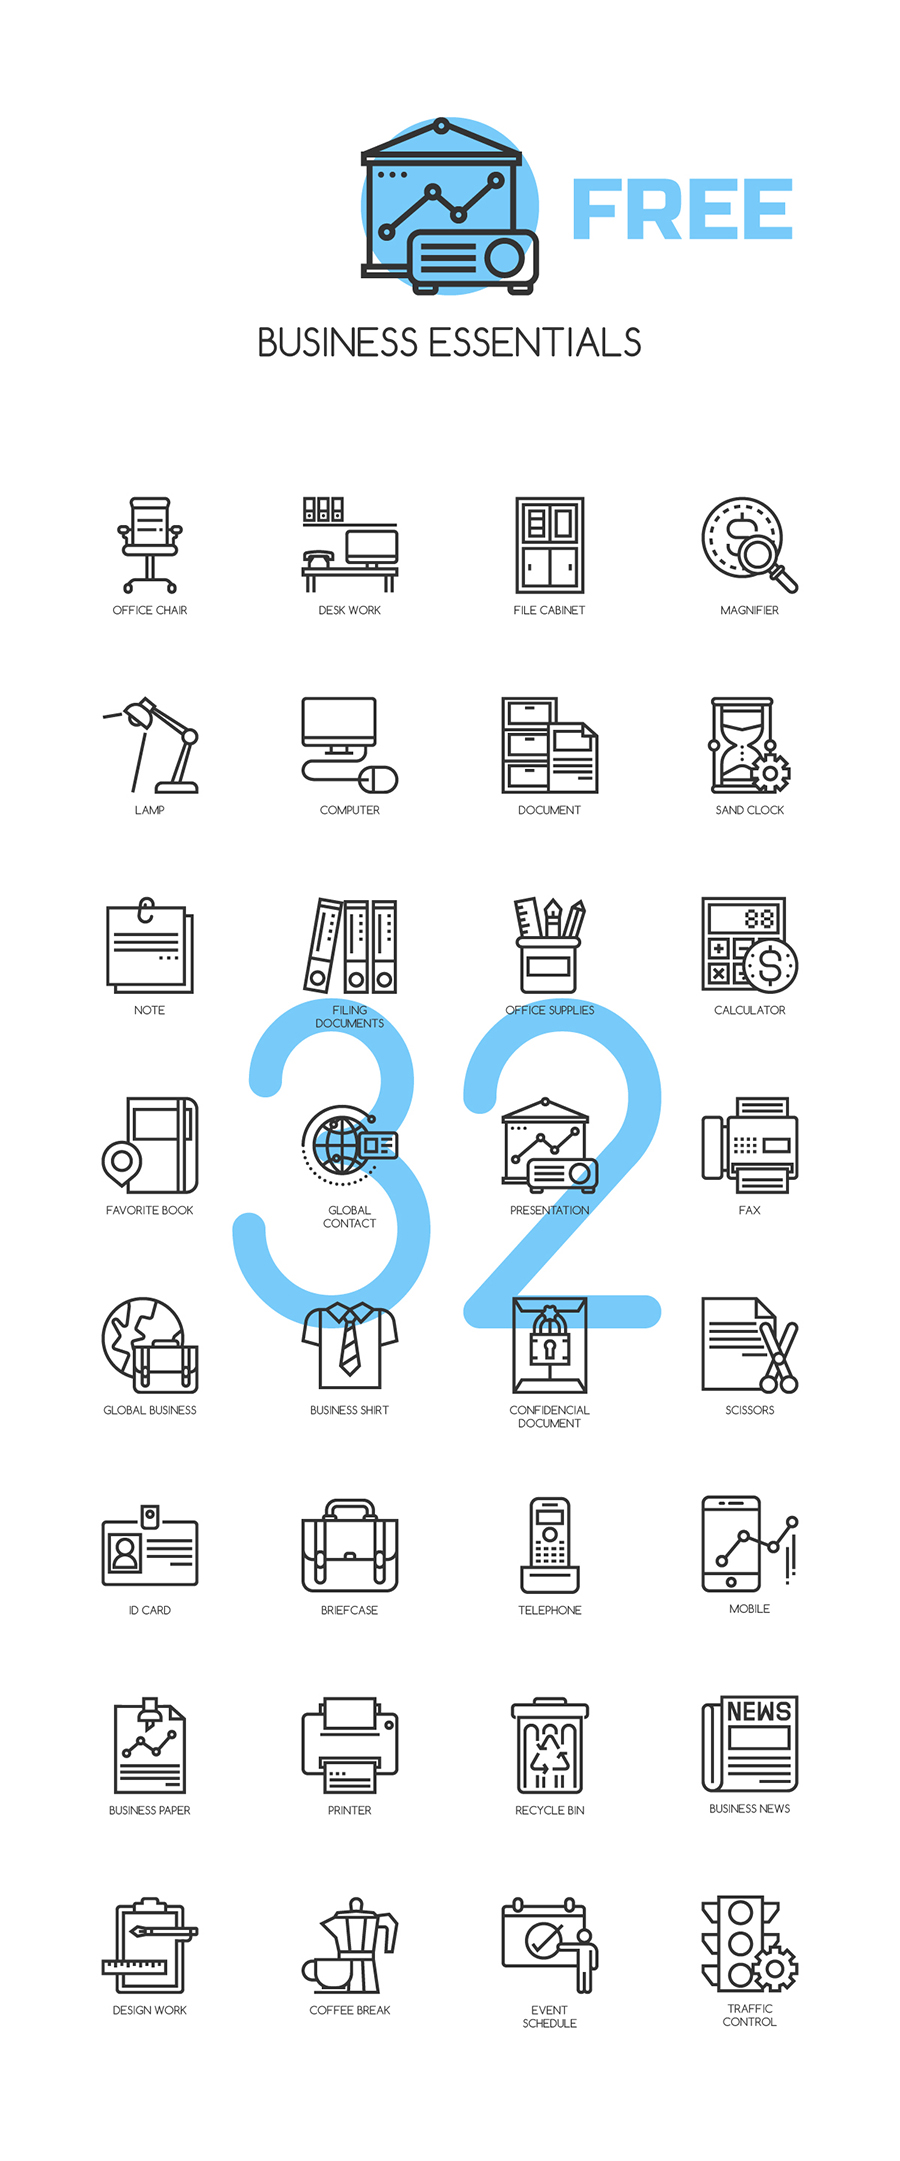 Business Essentials Free Icons Pack